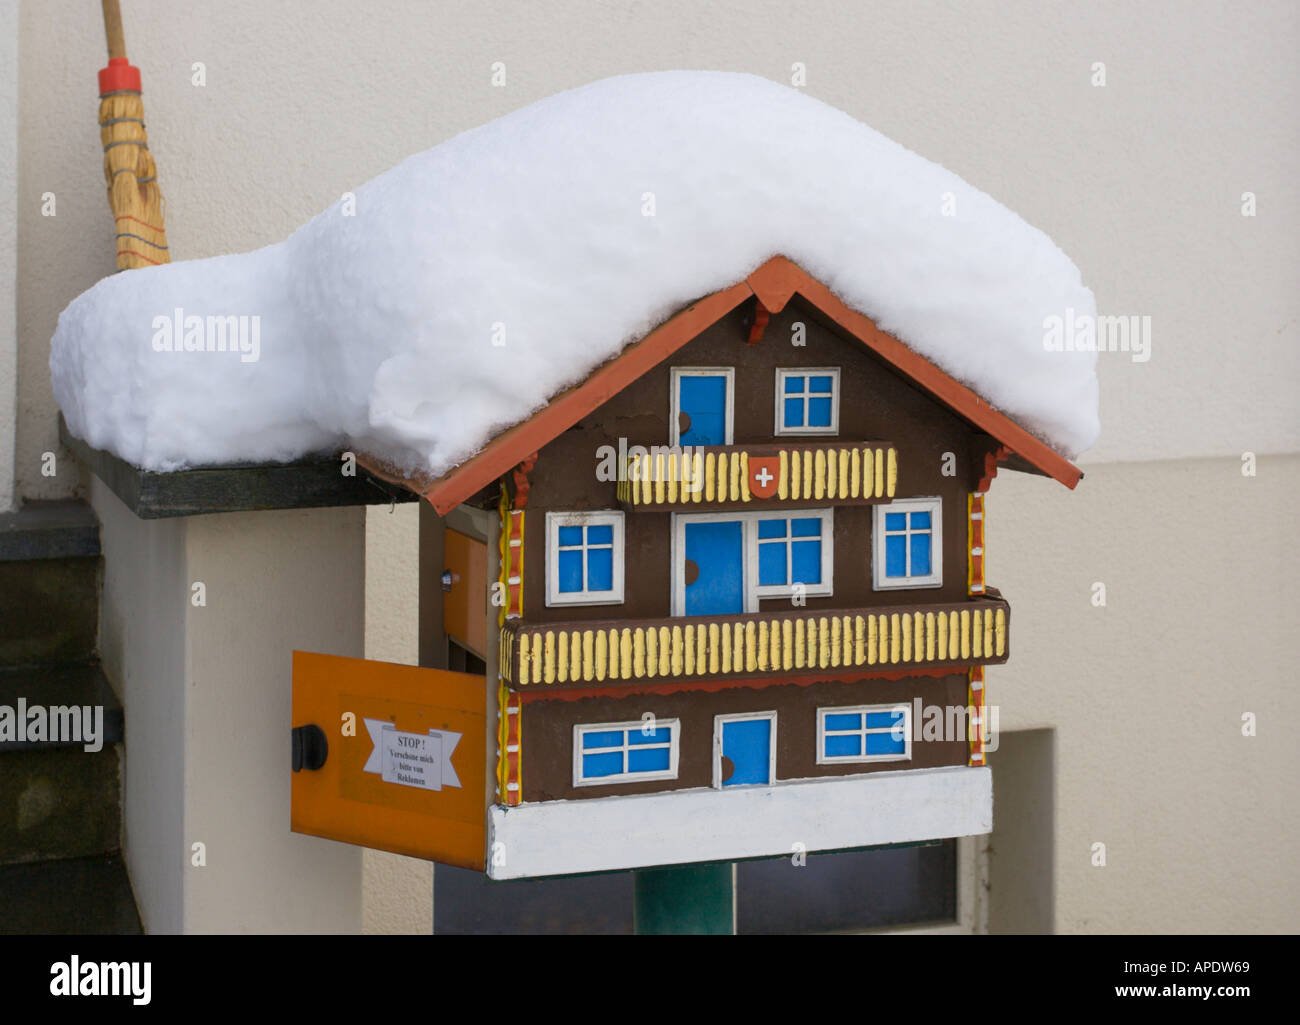 Home Letterbox Made As A Small Miniature Swiss Chalet On Short Pole Outside Local Persons House Covered In Snow Switzerland